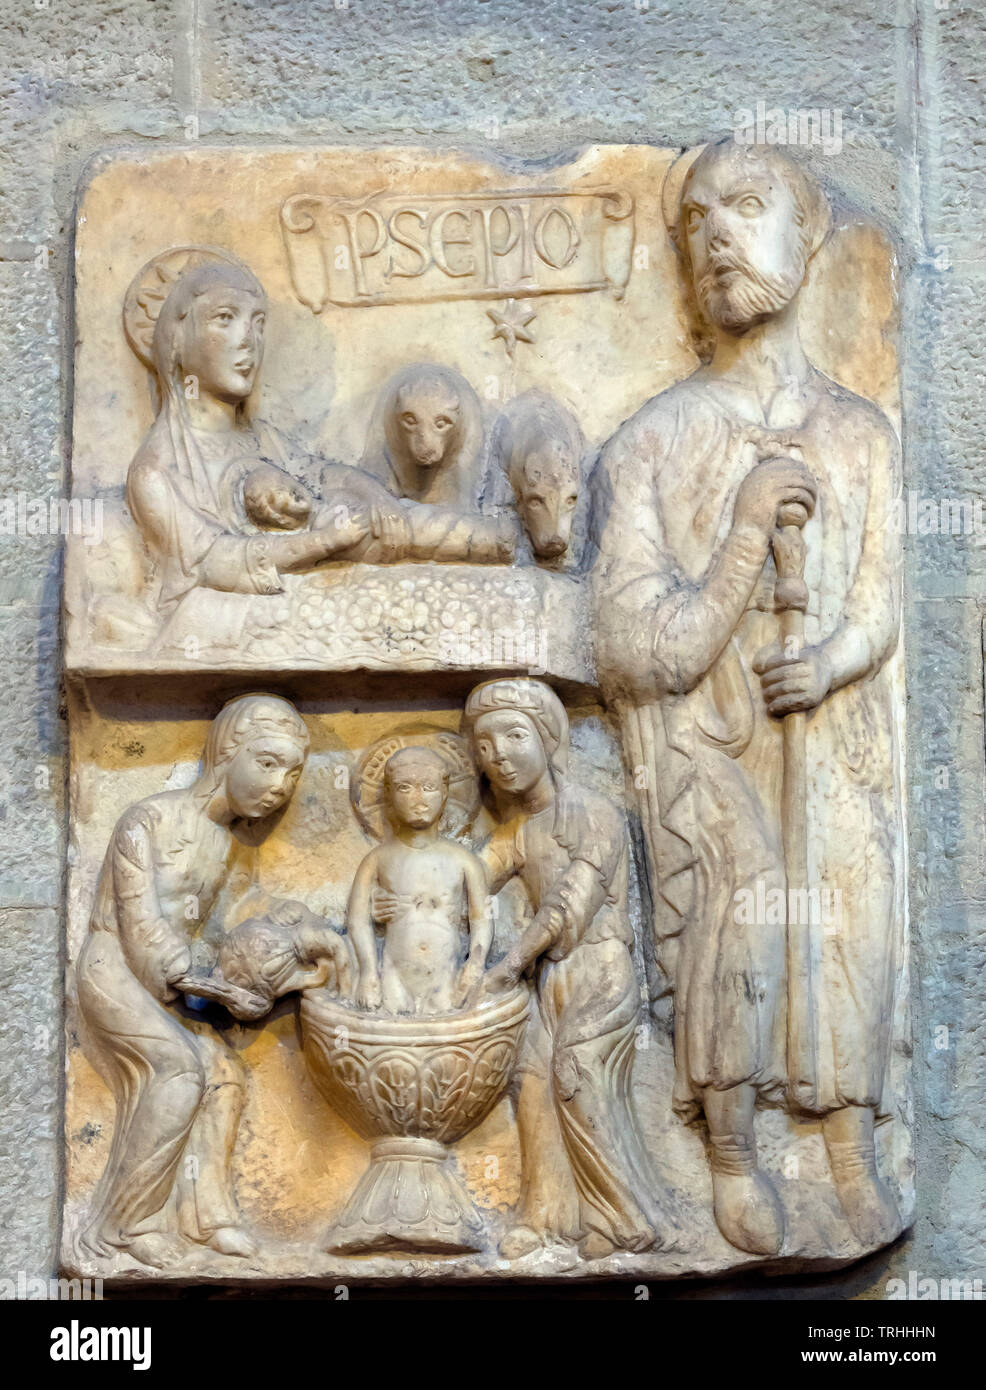 Nativity Scene, 13th century,  stone carving, Santa Maria della Pieve, Arezzo, Tuscany, Italy, Europe Stock Photo